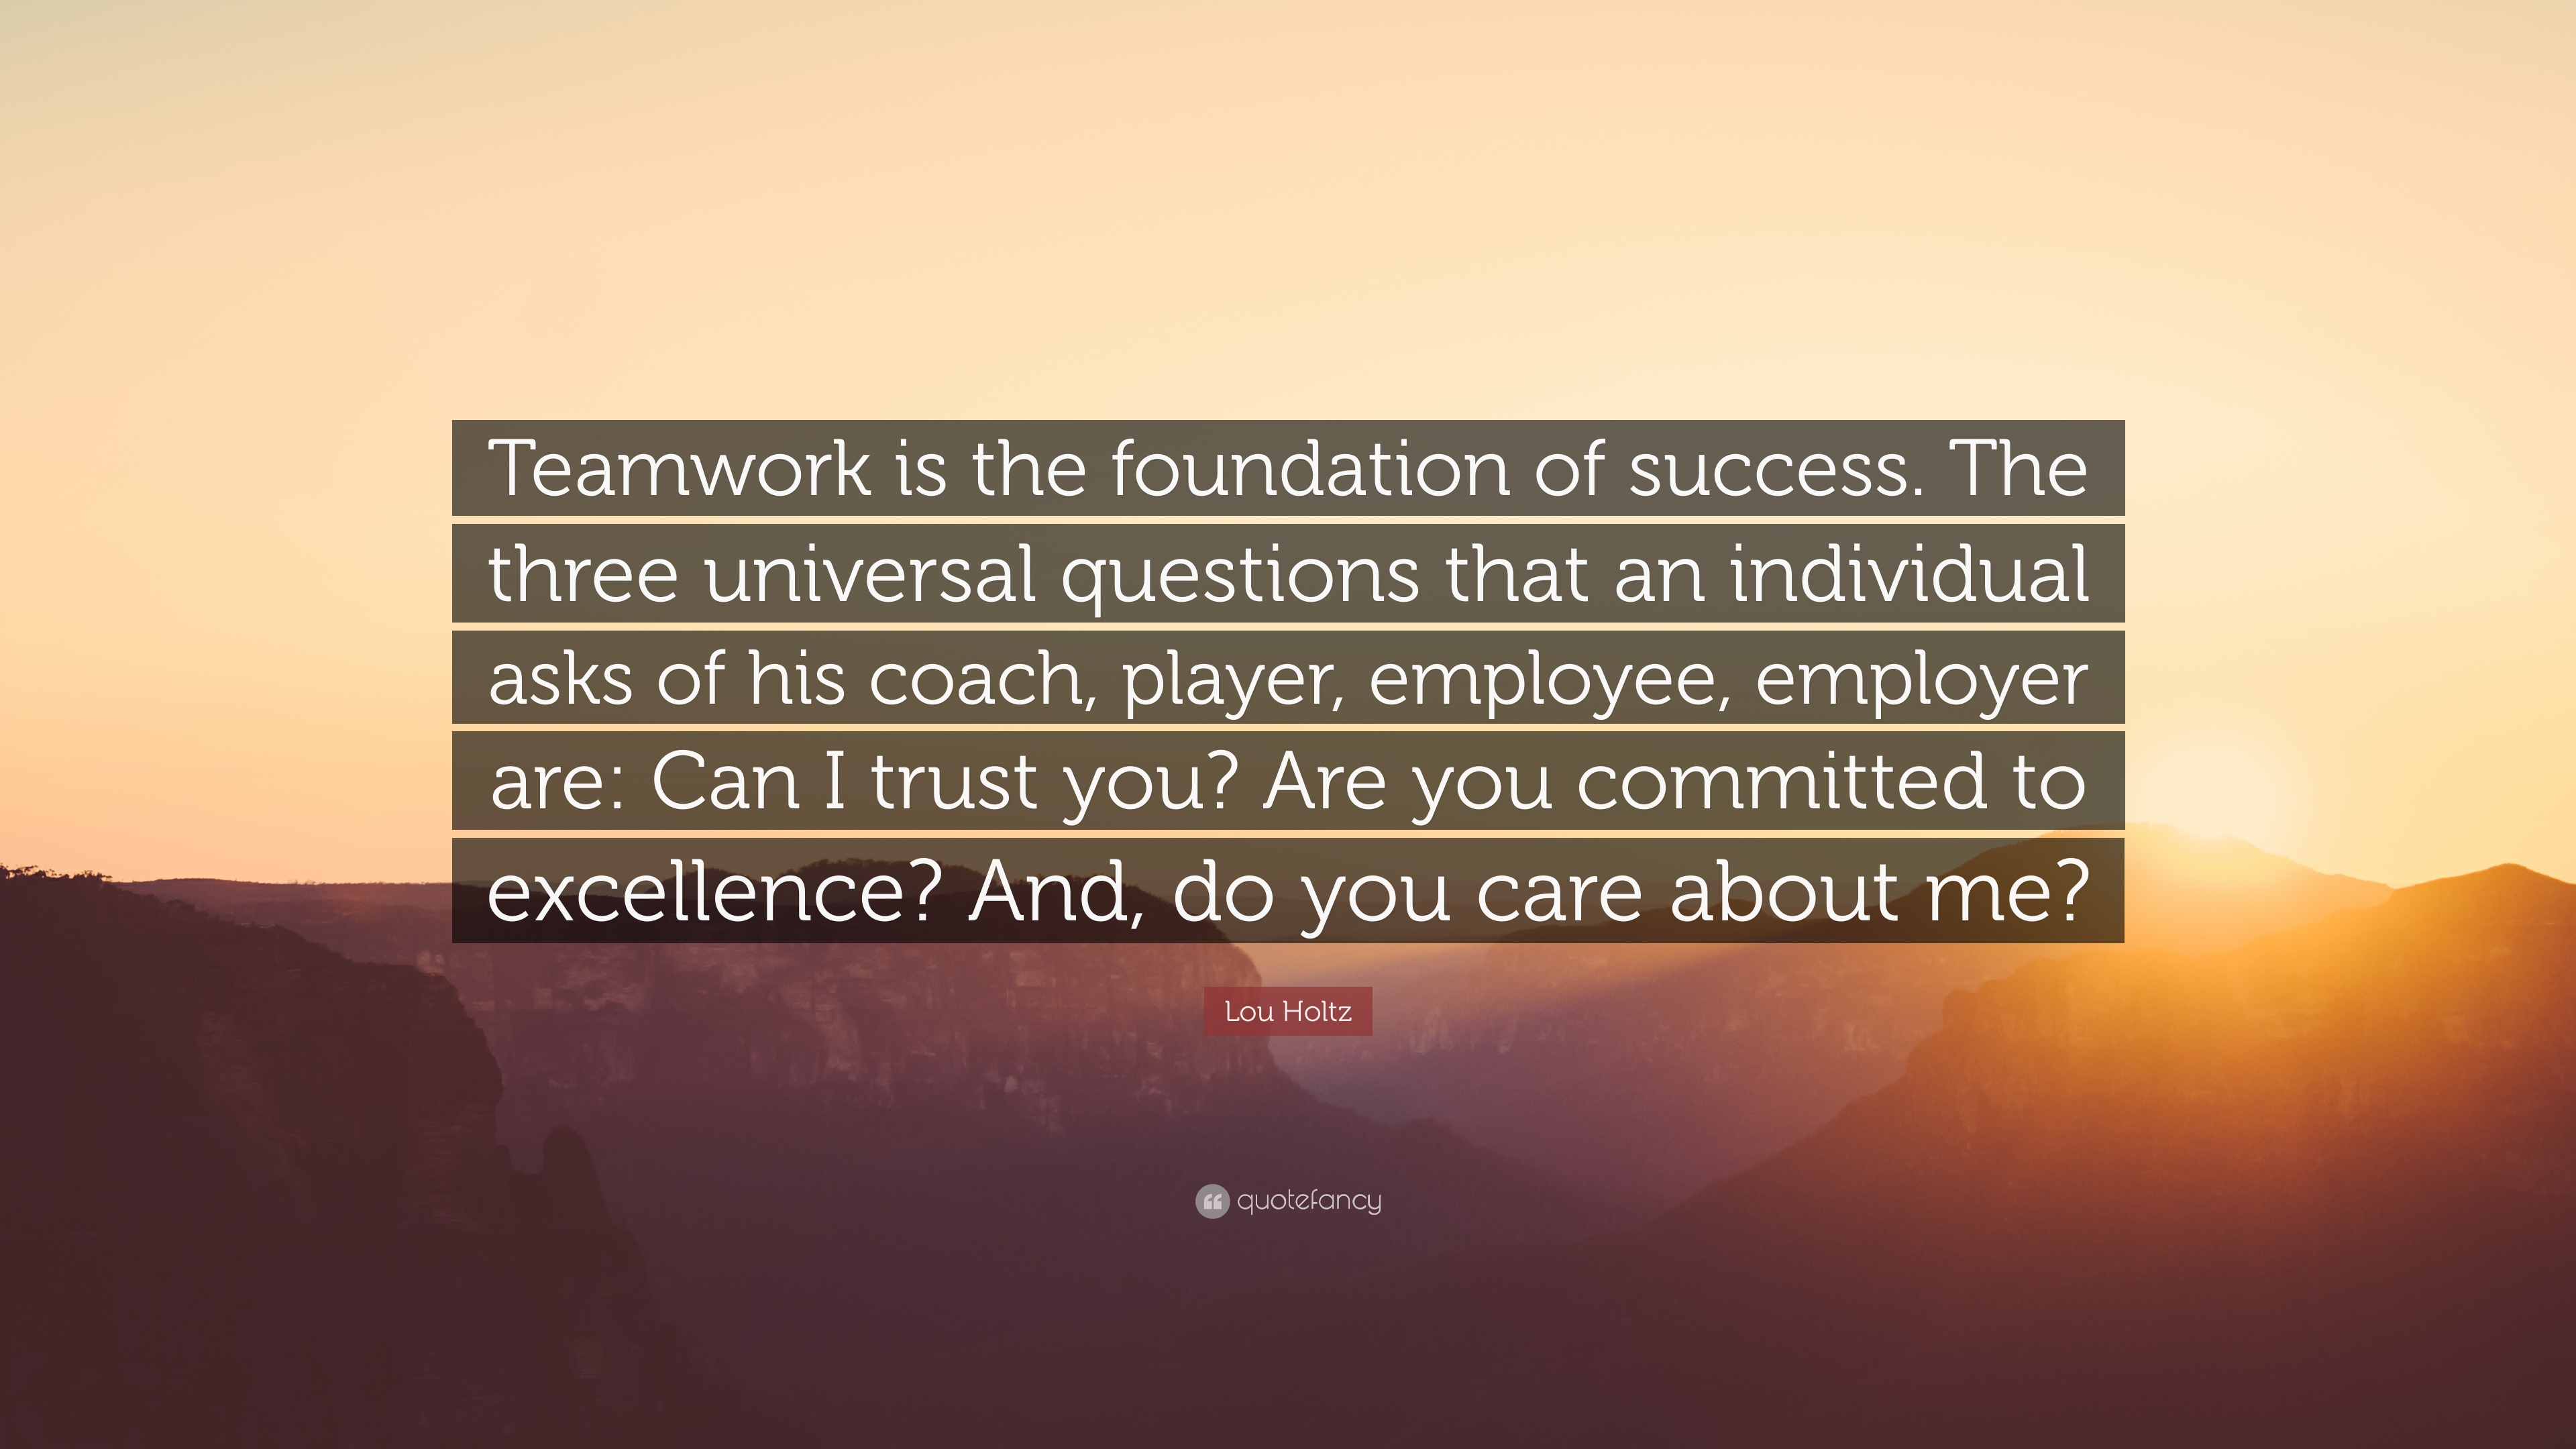 lou holtz quote teamwork is the foundation of success the three lou holtz quote teamwork is the foundation of success the three universal questions